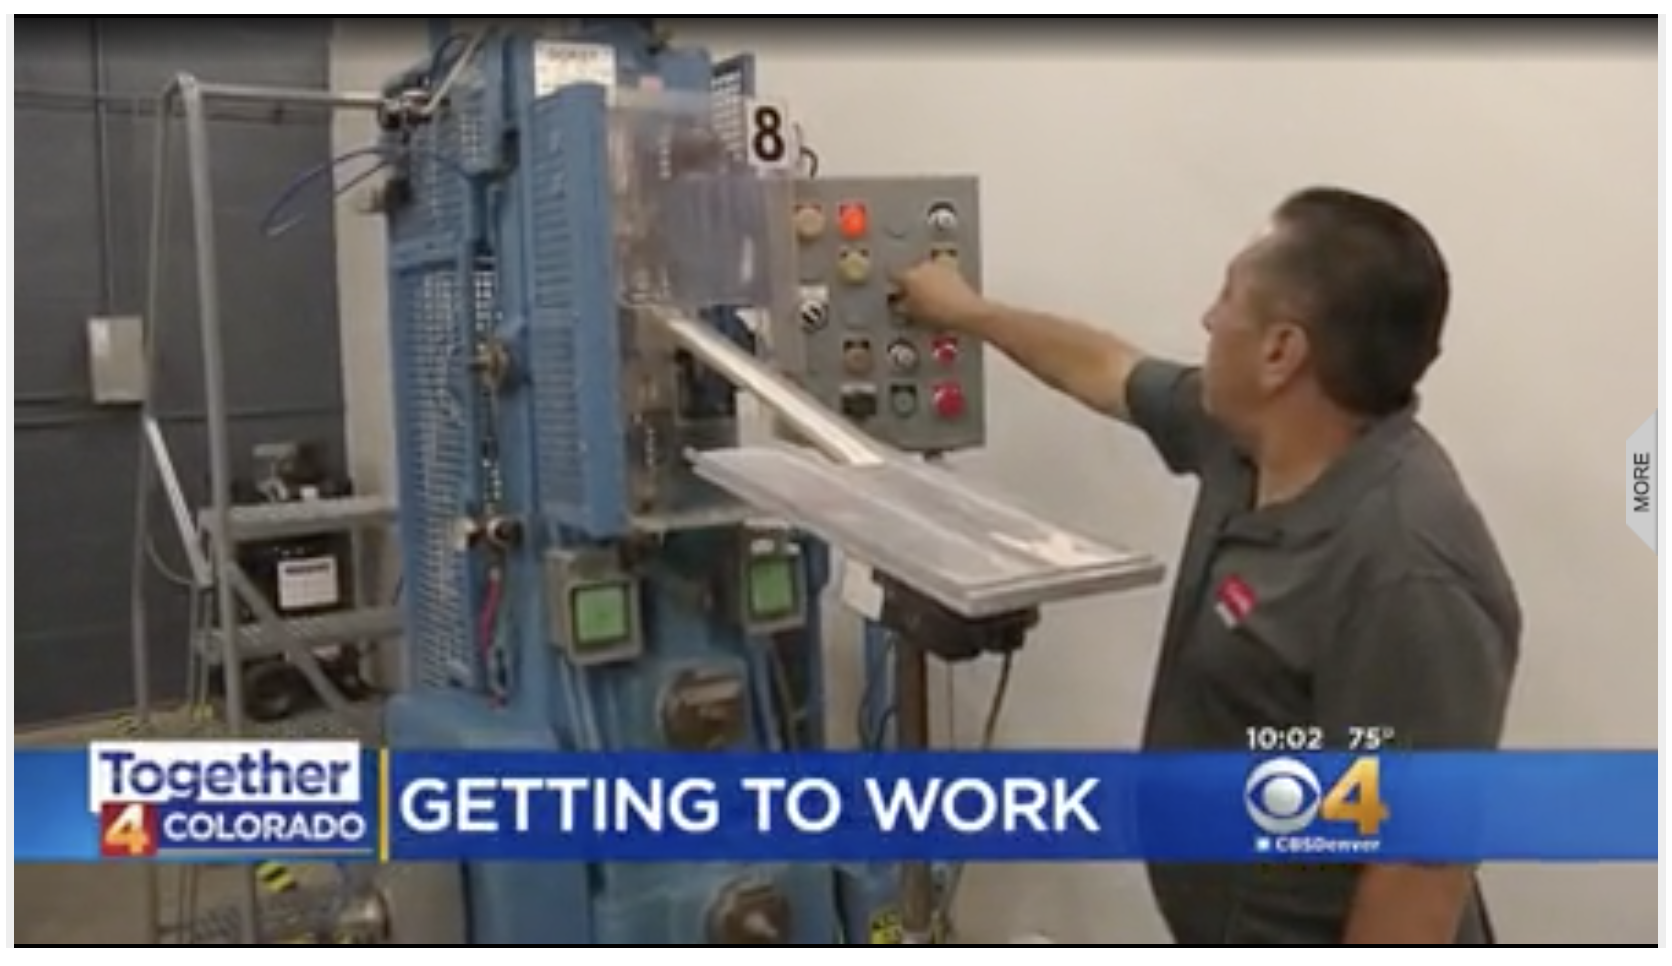 Career Program Helps People Get Another Chance At Life  - CBS feature on our partnership with  CoorsTek  and  Activate Workforce Solutions  from August 15, 2018.